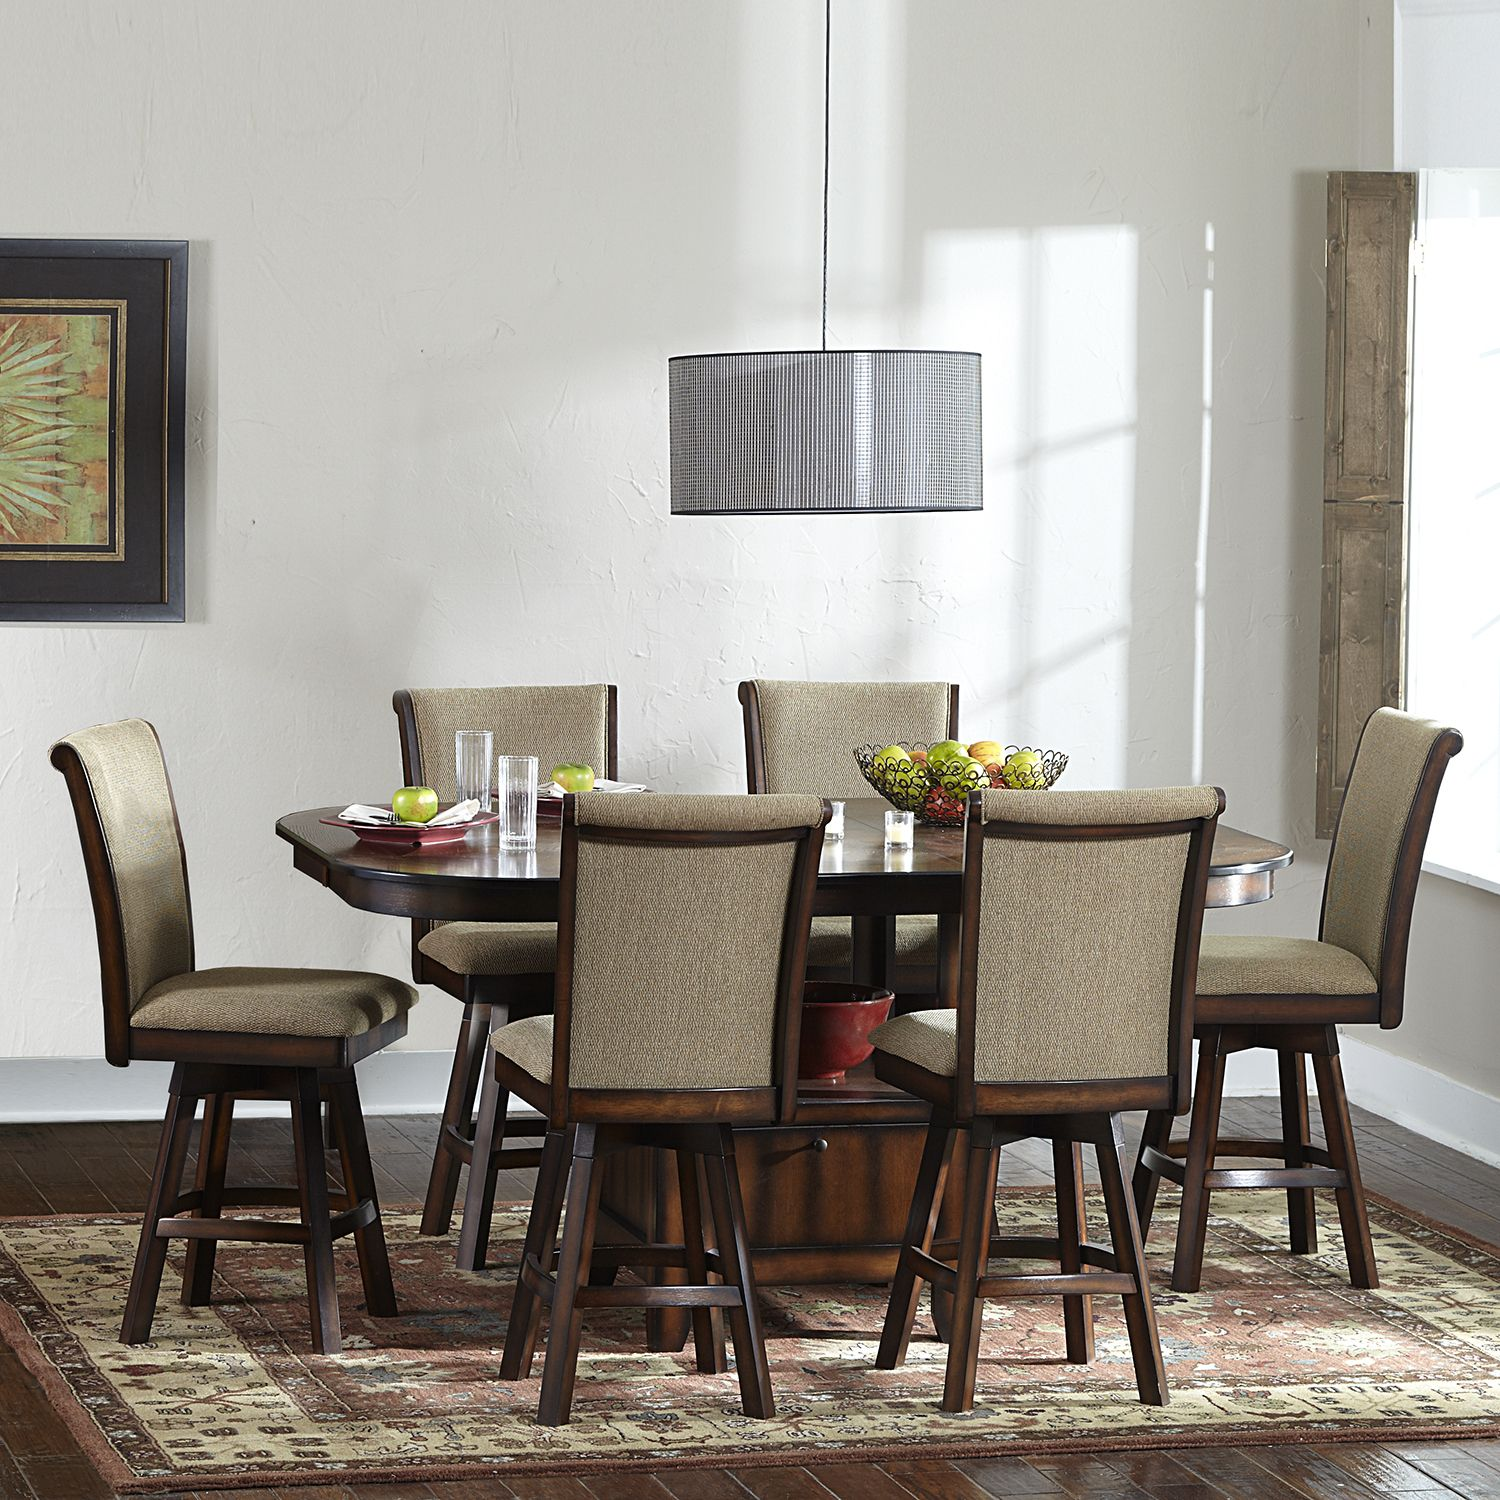 Outfit your dining room with this walnut